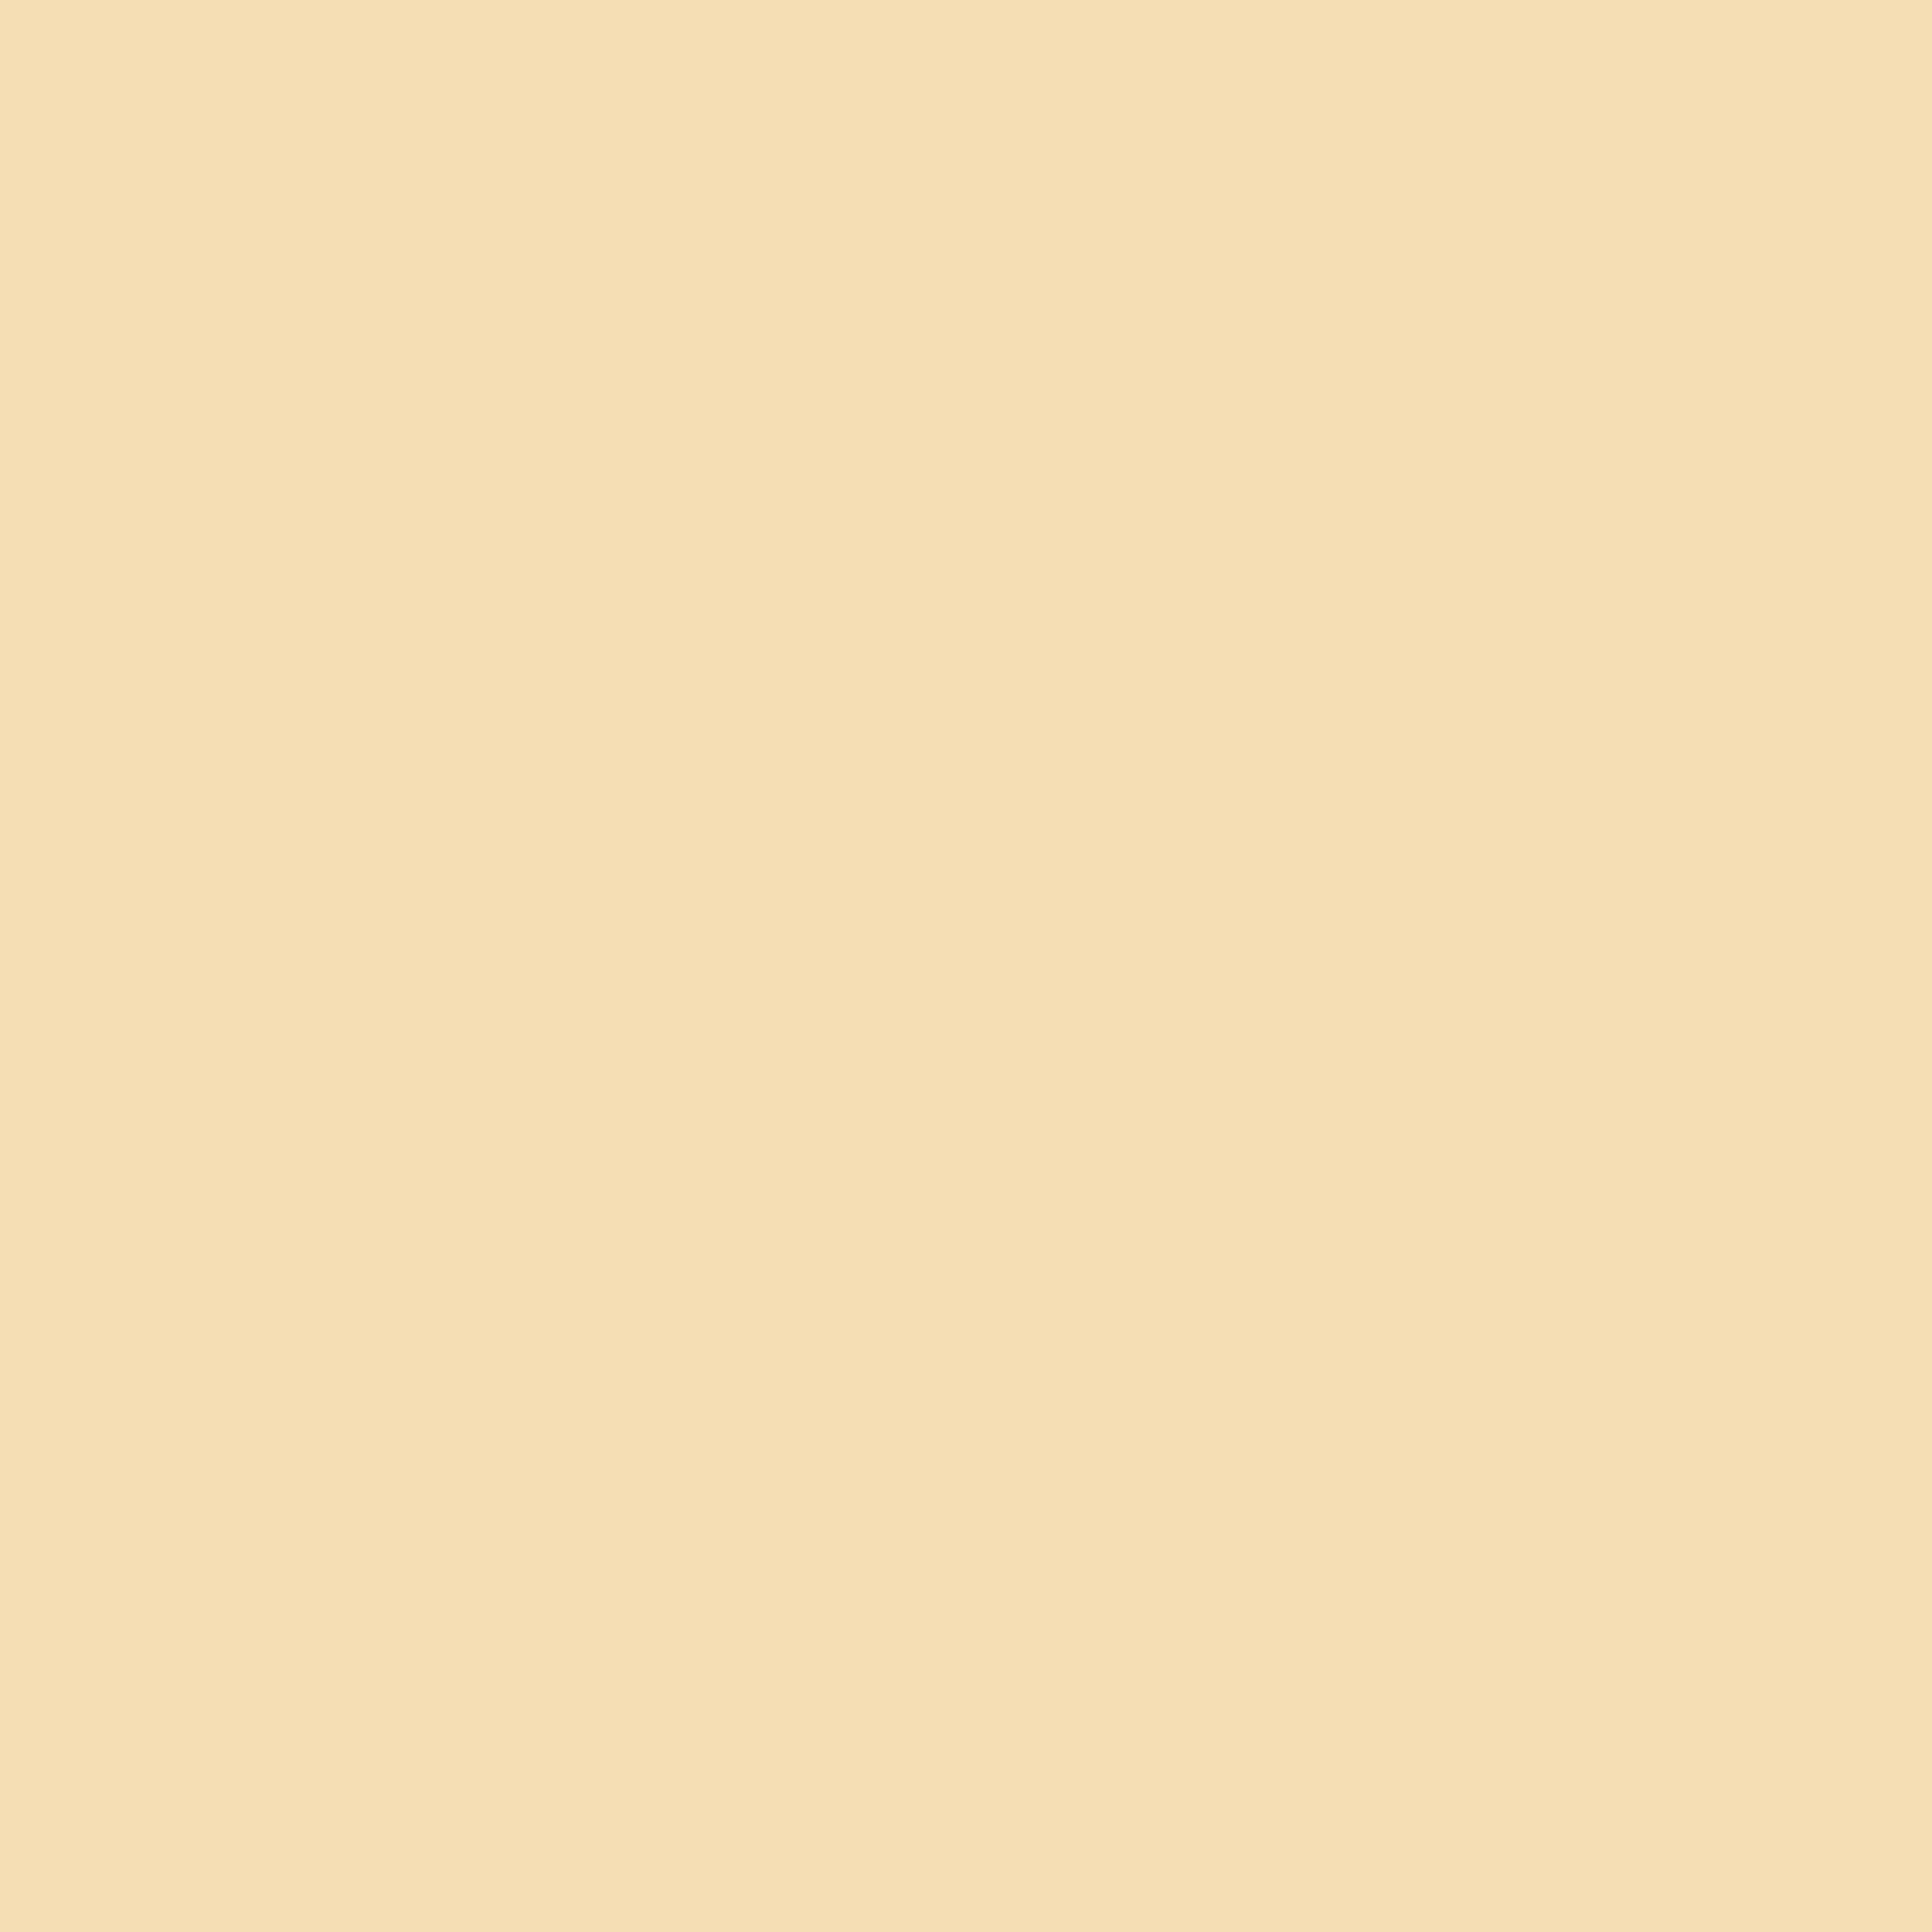 2732x2732 Wheat Solid Color Background